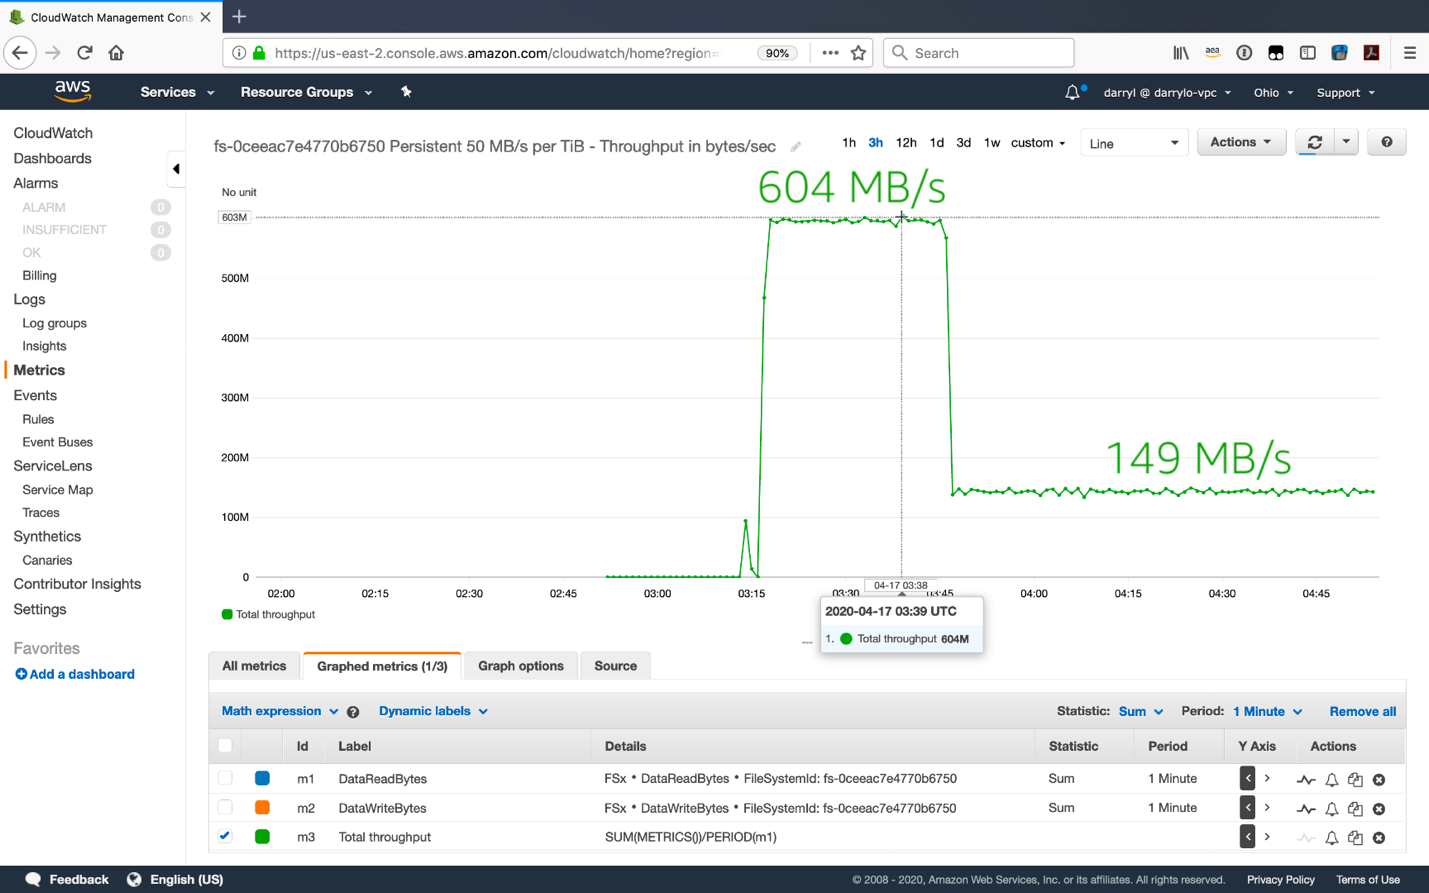 Amazon CloudWatch graph shows the total throughput of the file system